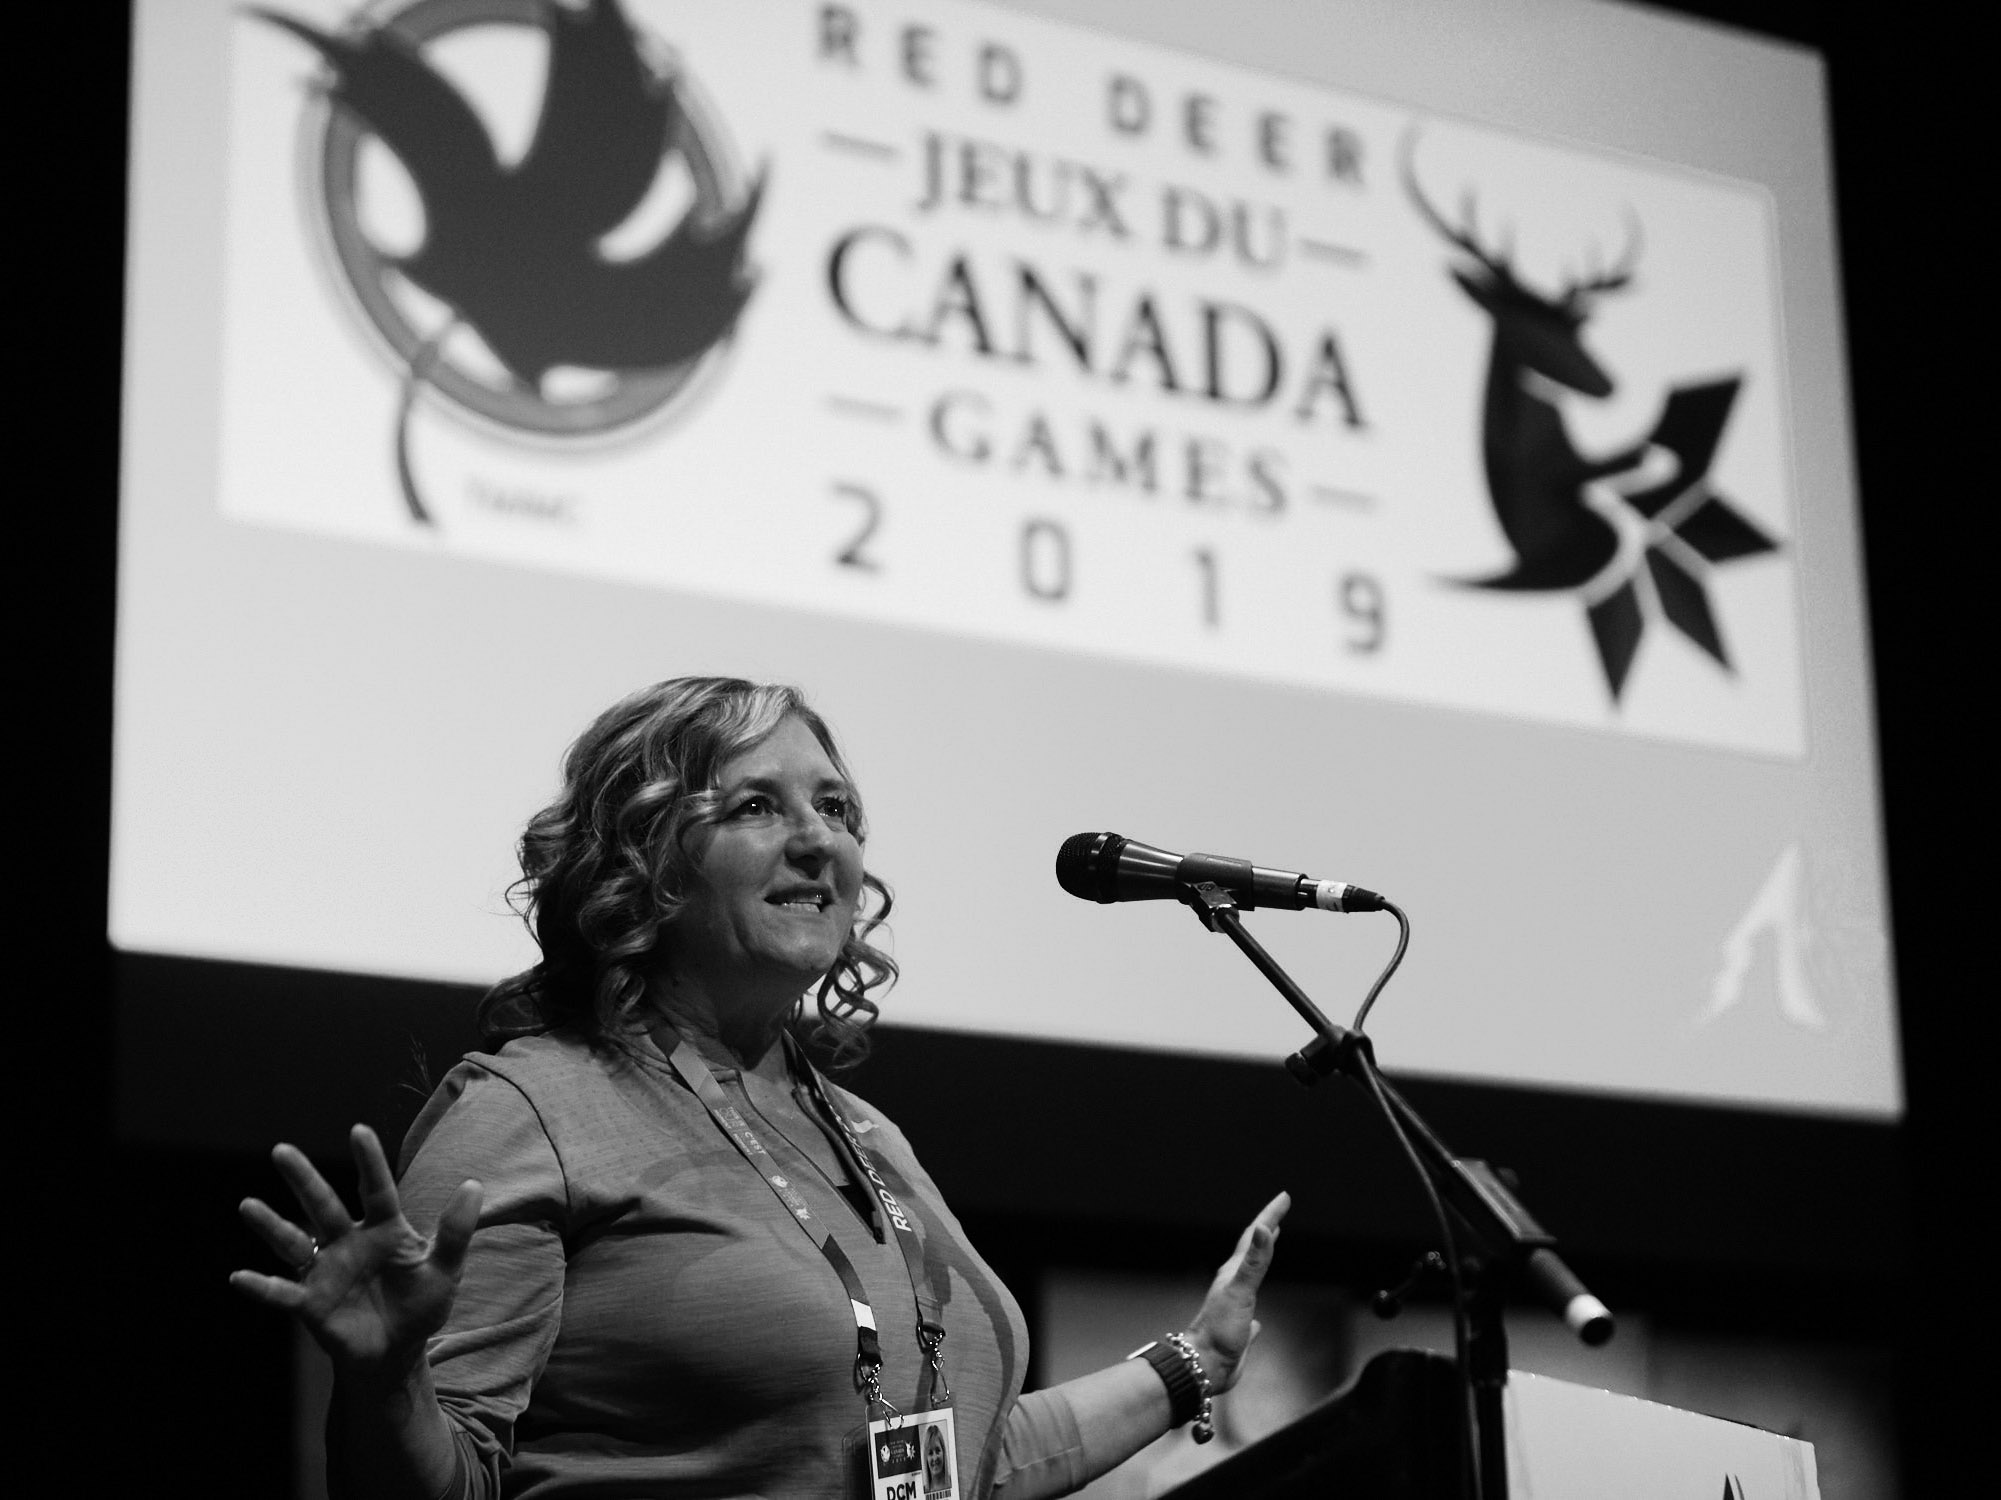 Canada Games Council Mourns the Passing of Pat Lechelt - Team Alberta's Chef de Mission